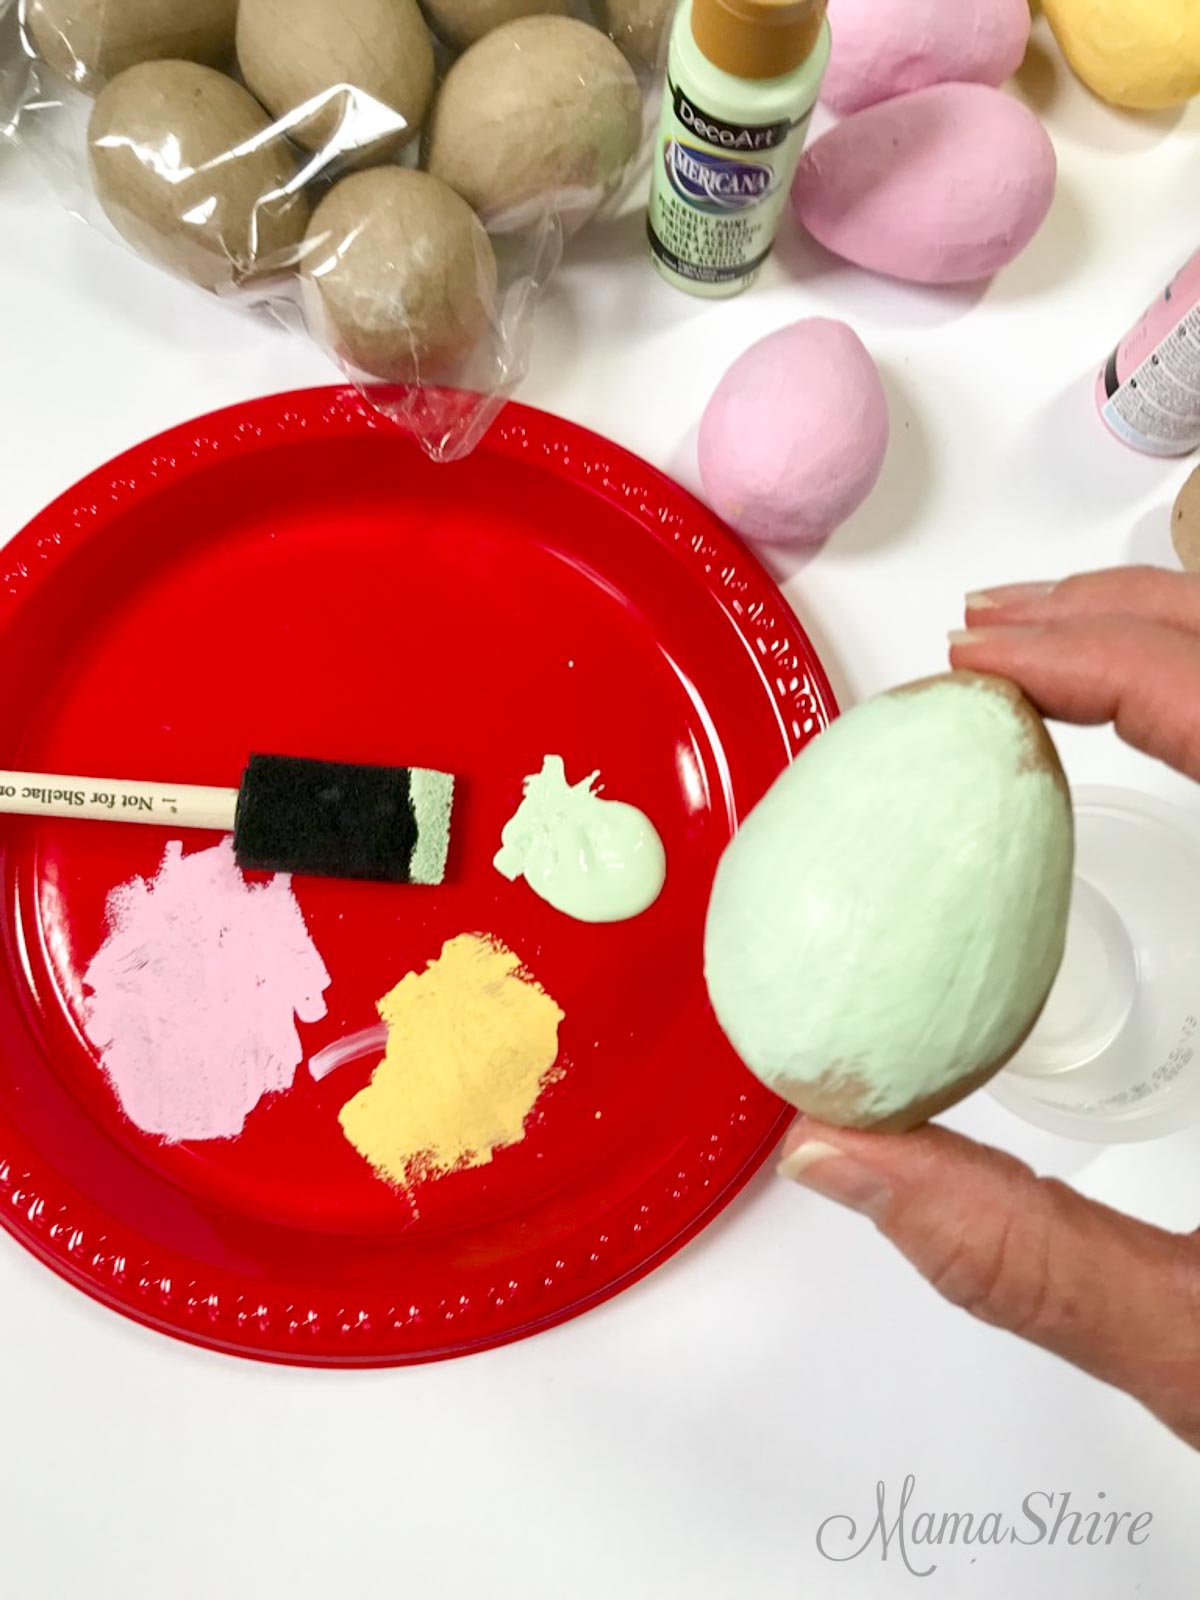 Painting a paper mache egg.